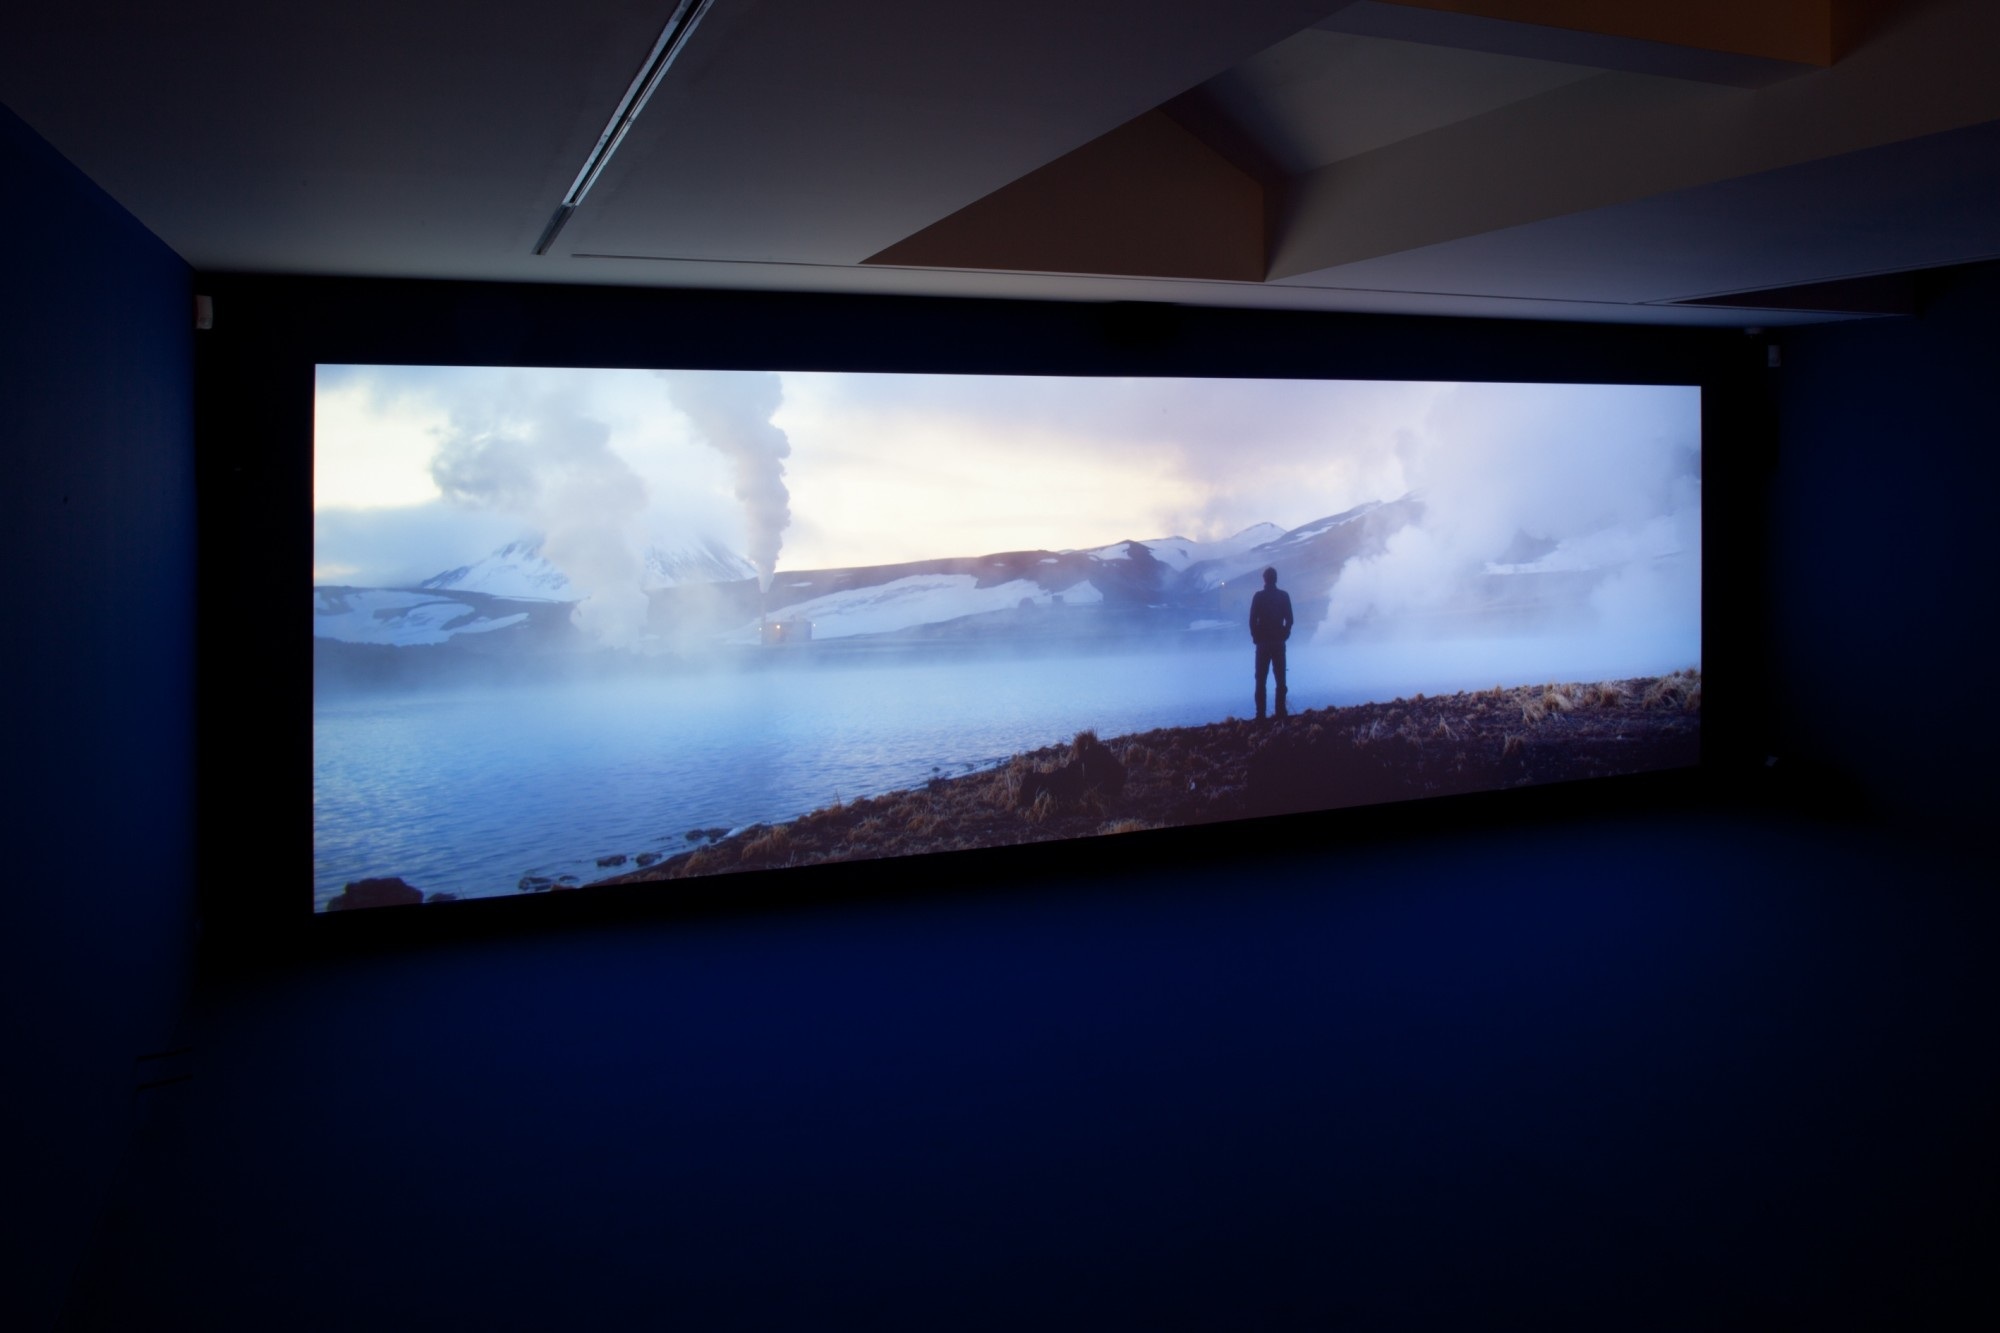 Playtime. Galerie Ron Mandos, Amsterdam, 2014  Double projection, edge blended, single screen ultra high definition with 5.1 surround sound, 66'57""